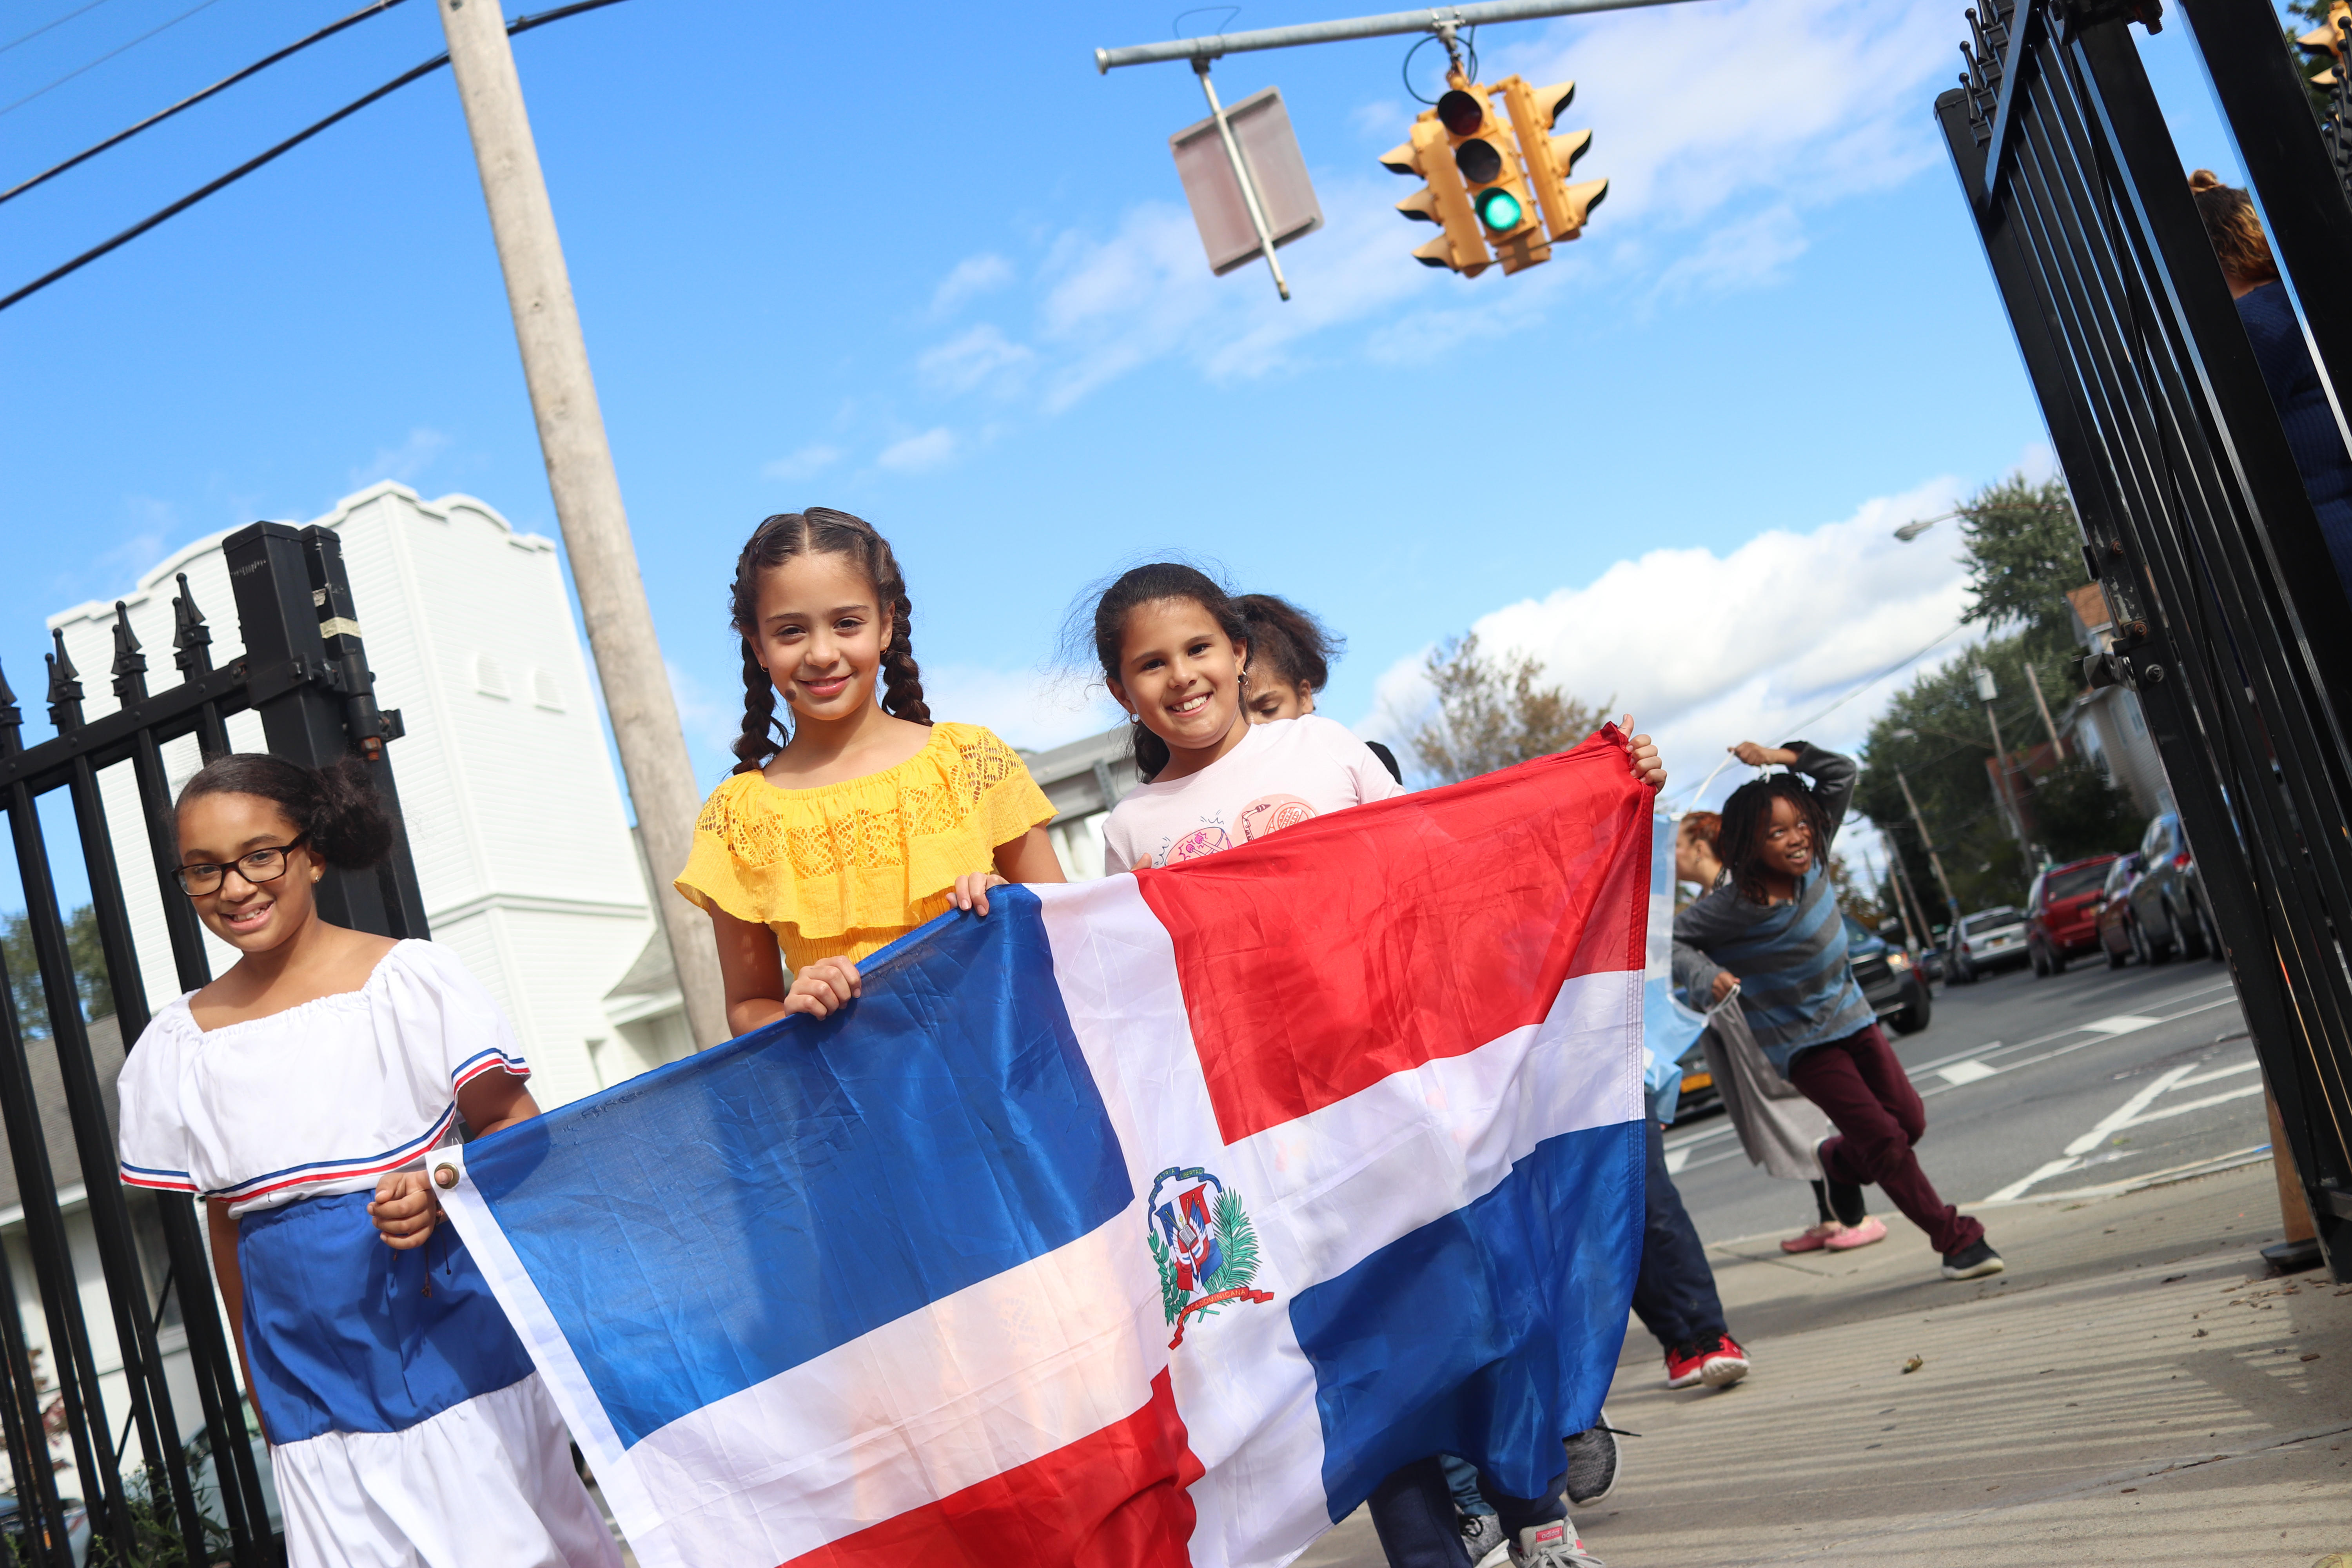 Three students walking with a flag during a Hispanic Heritage parade.